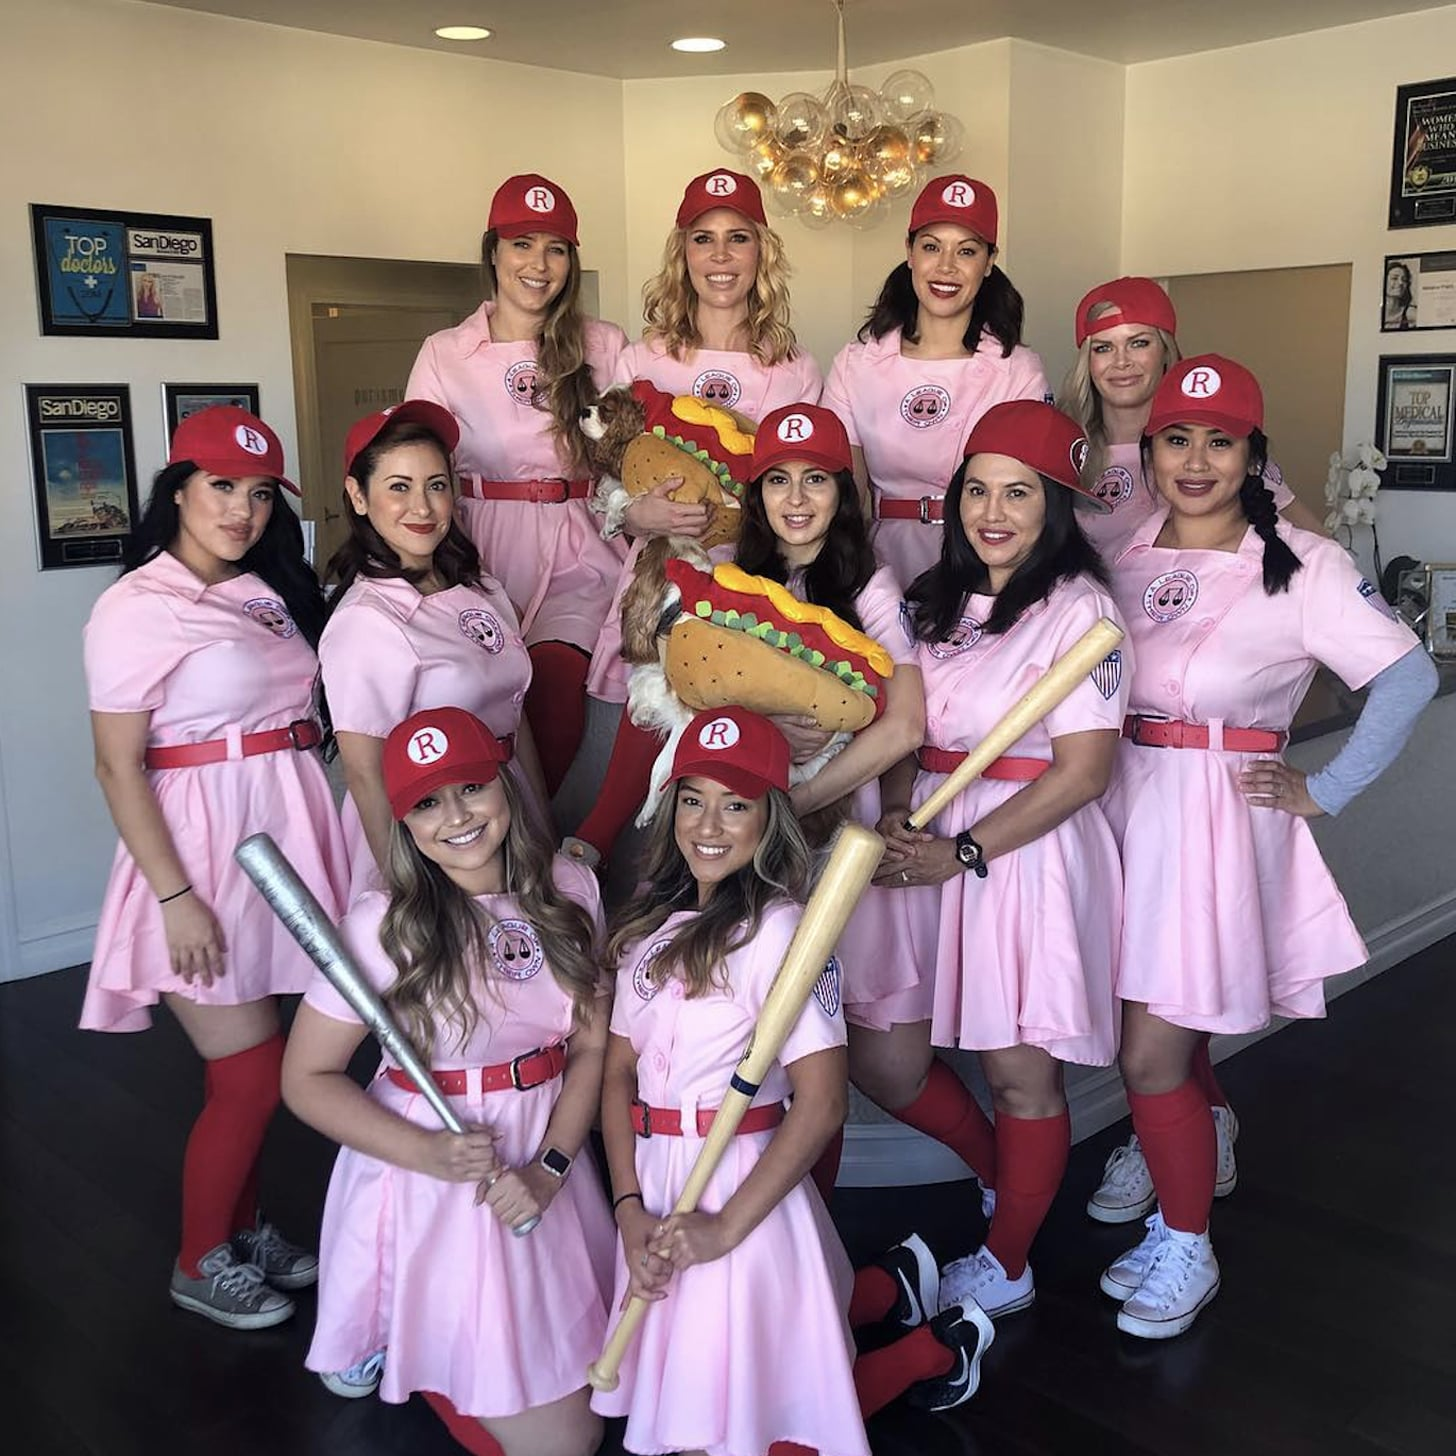 Group Halloween Costumes 2019